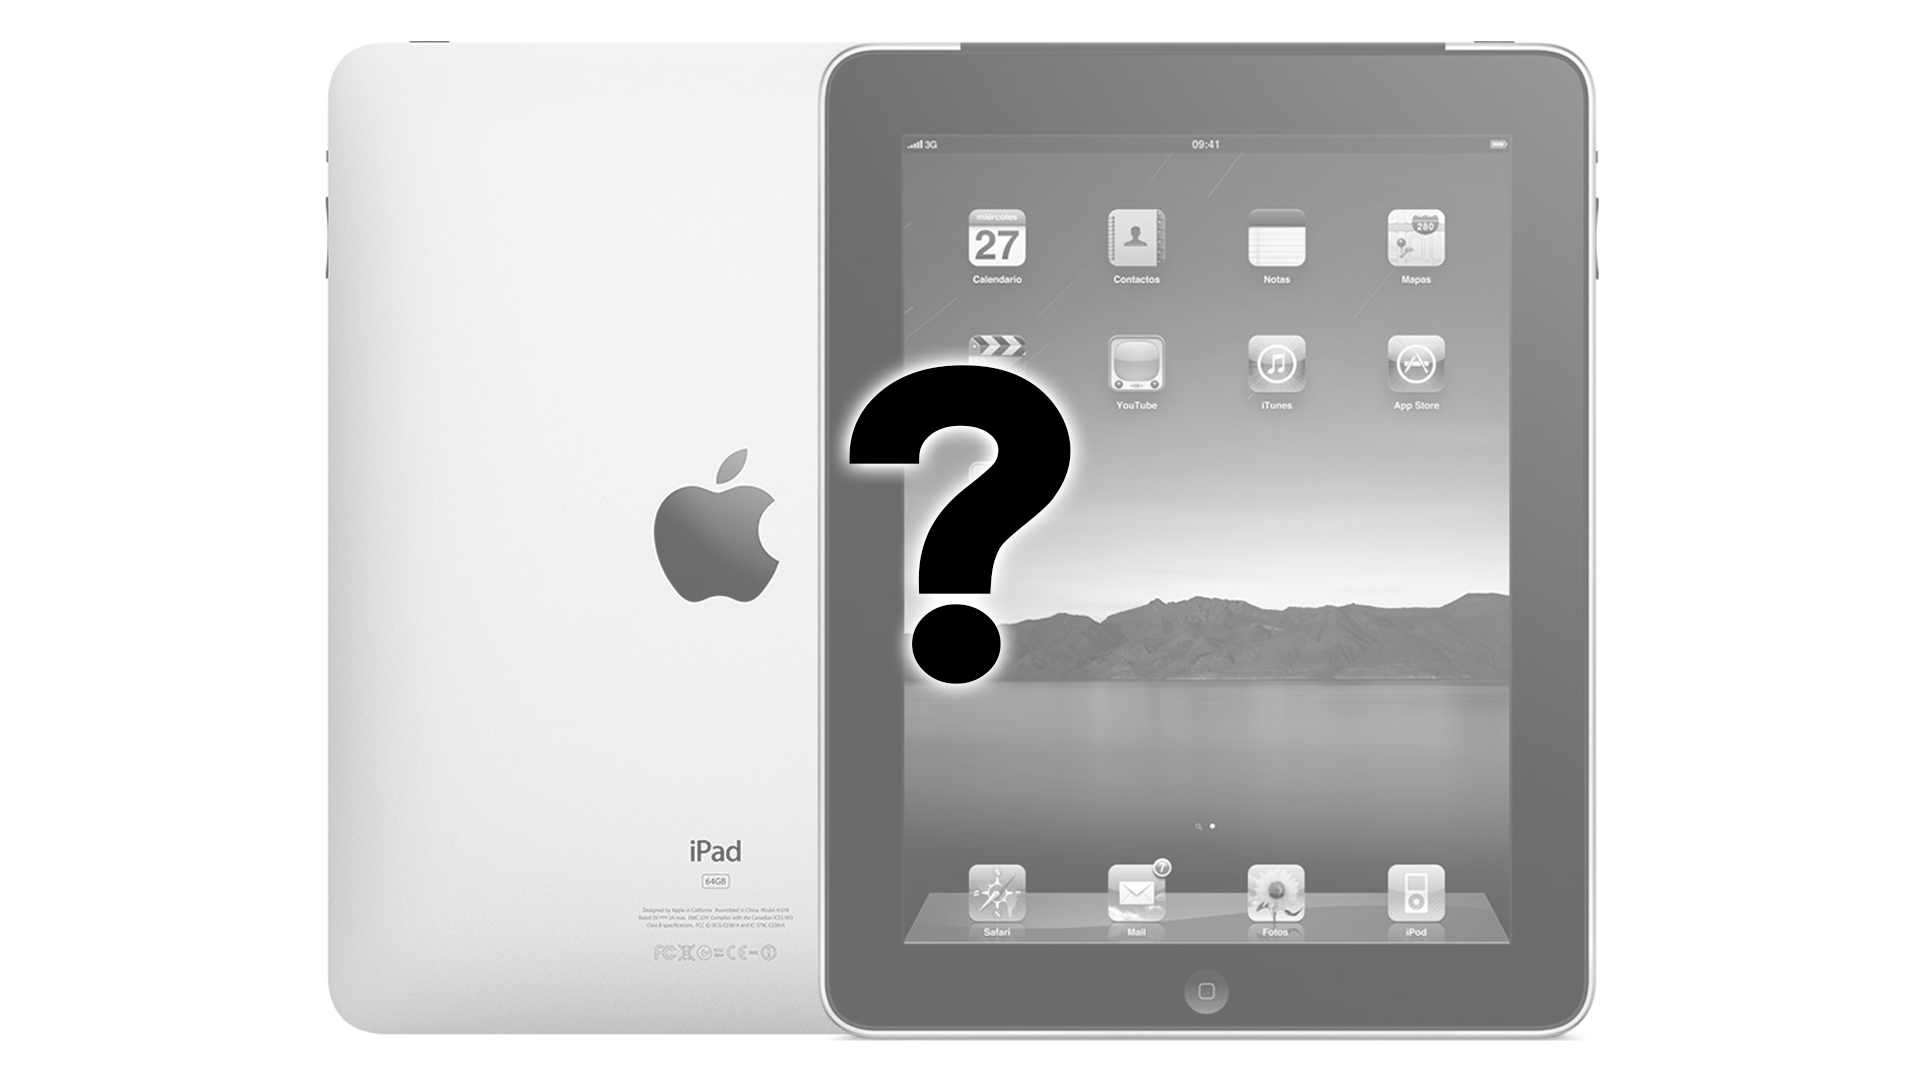 Which iPad is it?